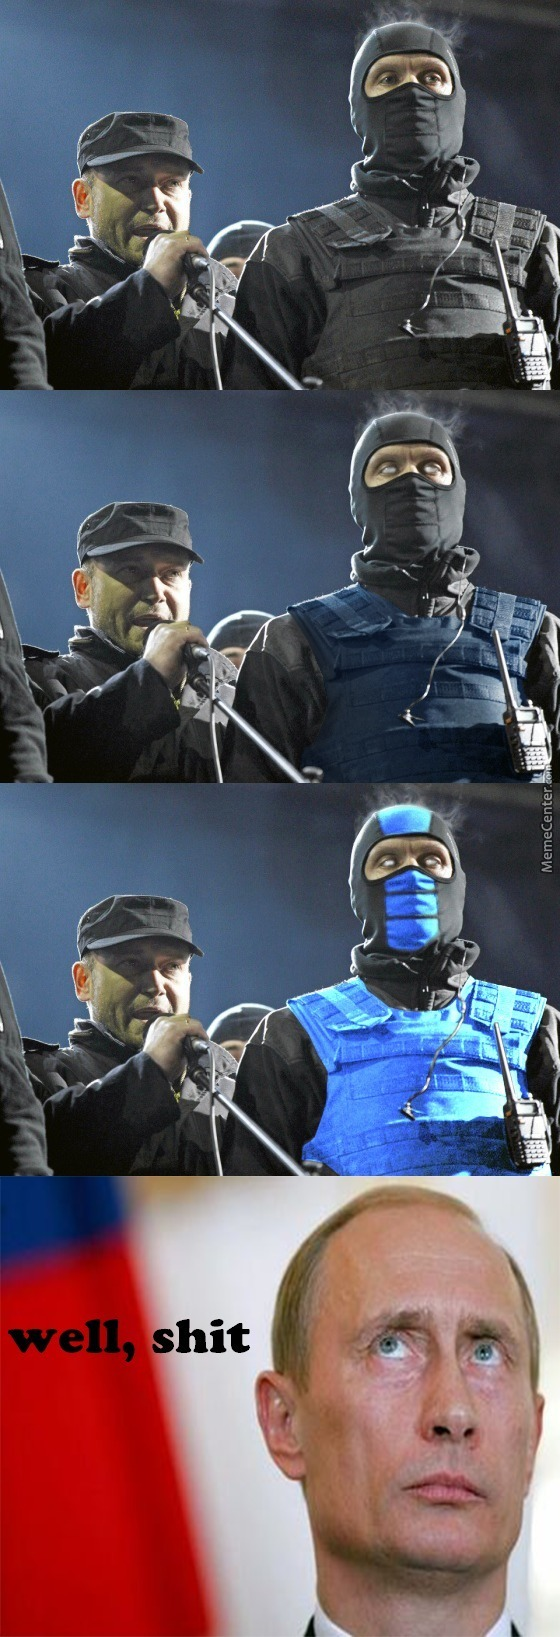 Sub Zero Have Been Summoned To Fight For Ukraine